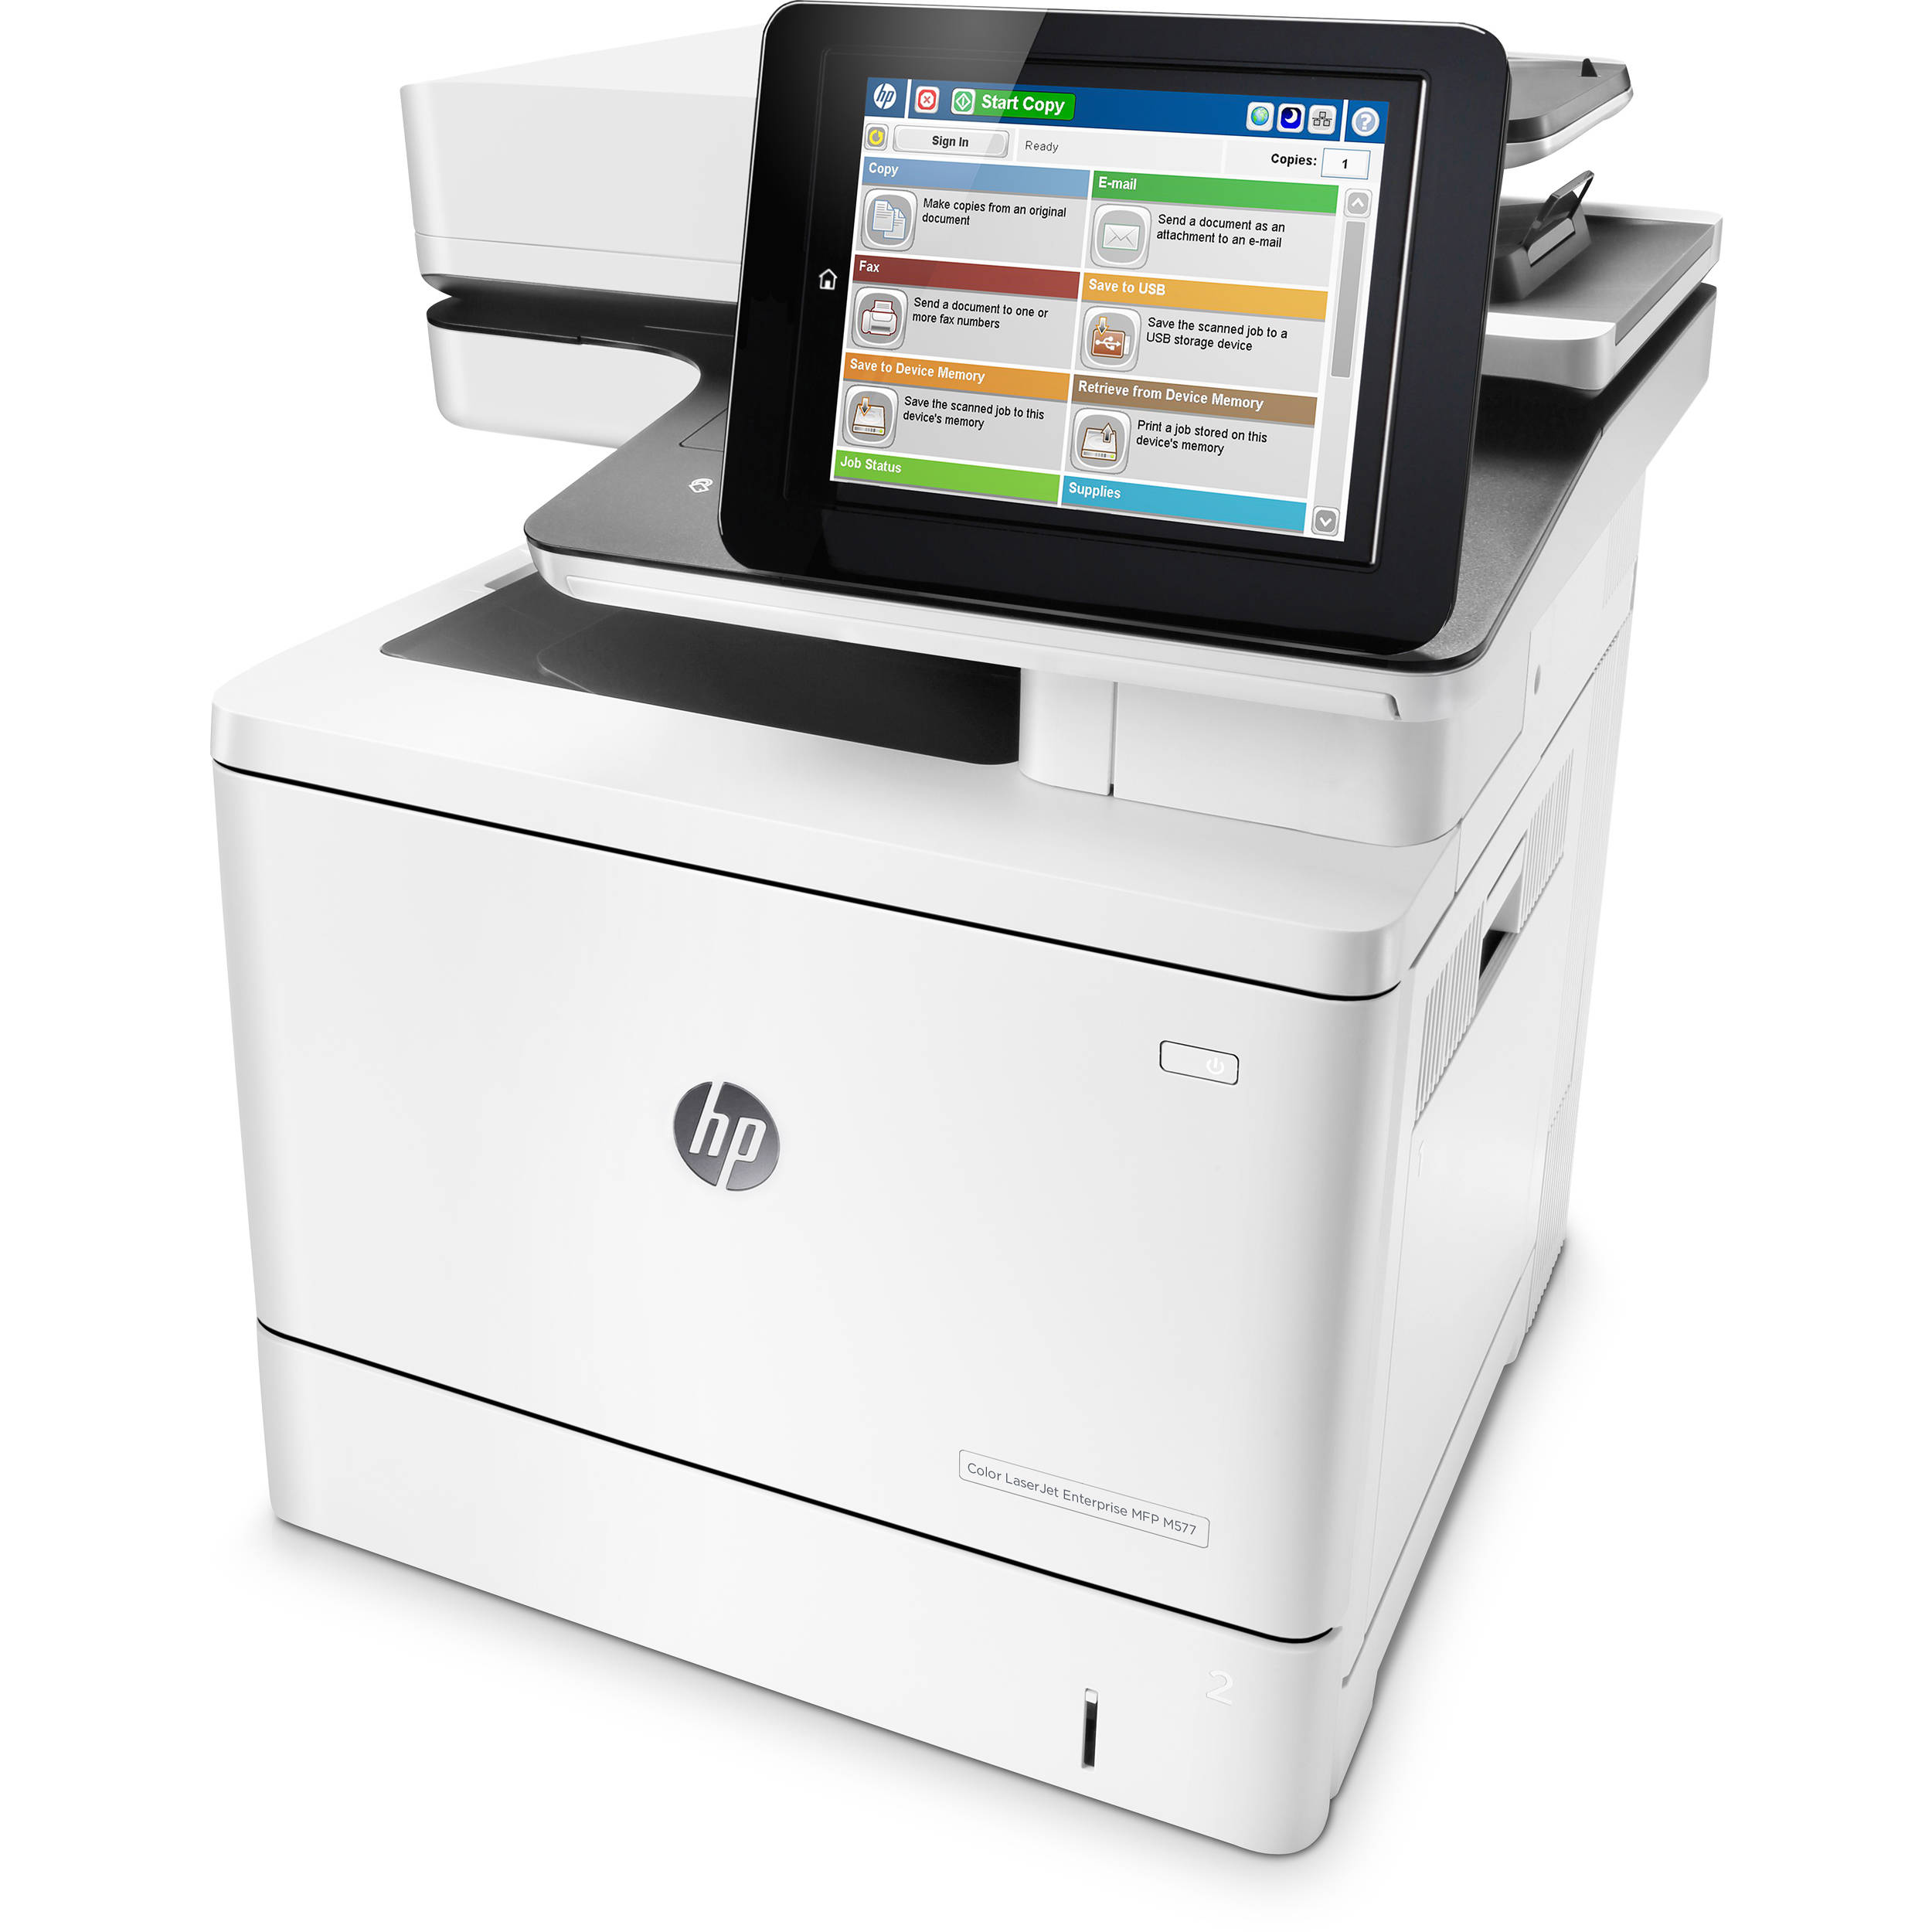 HP Color LaserJet Enterprise MFP M577dn B5L46A